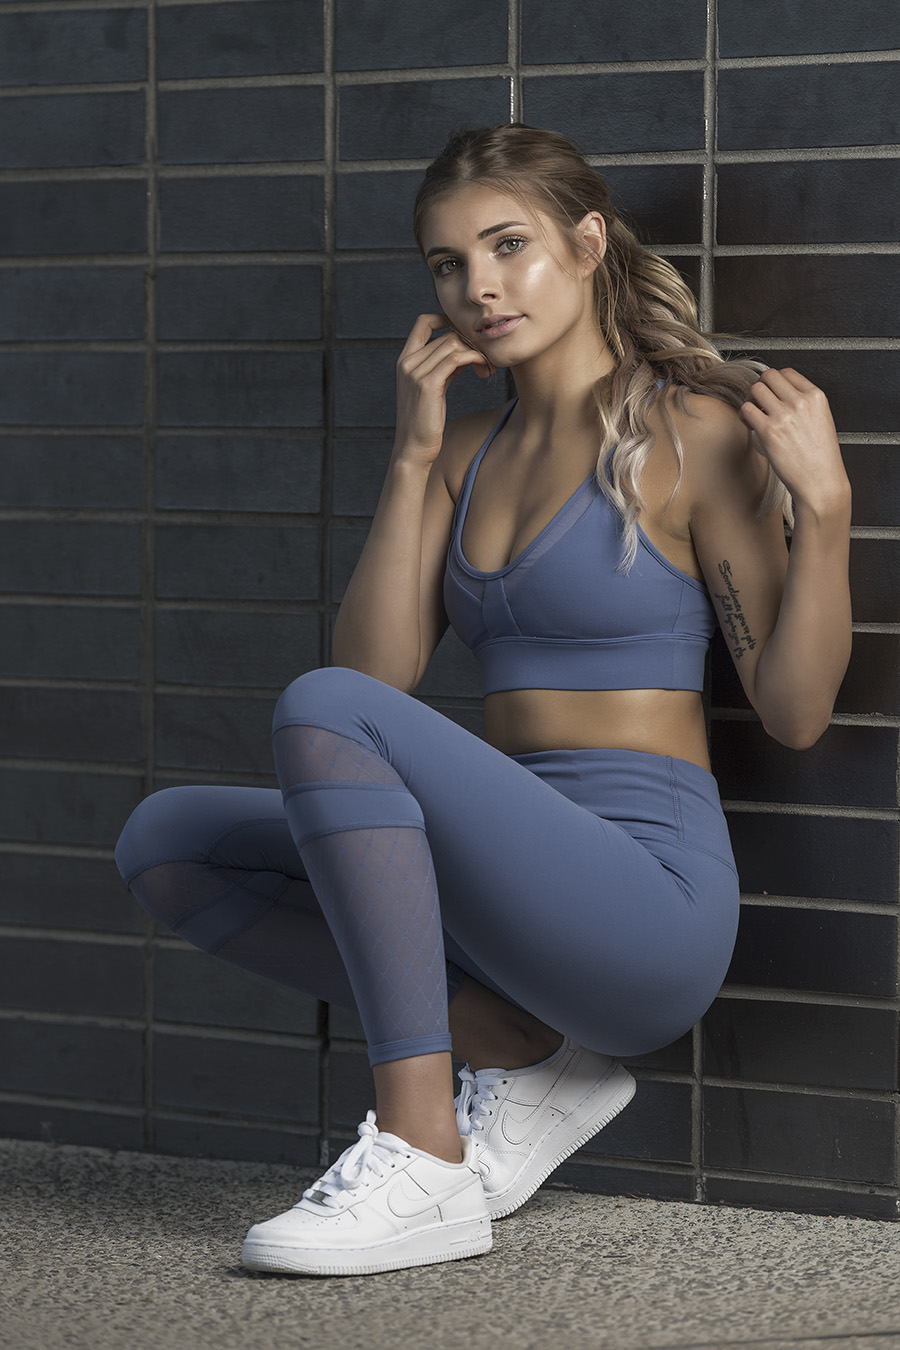 Nikita crouching against a tiled wall wearing a Lorna Jane light blue crop top and matching fabric Leggens